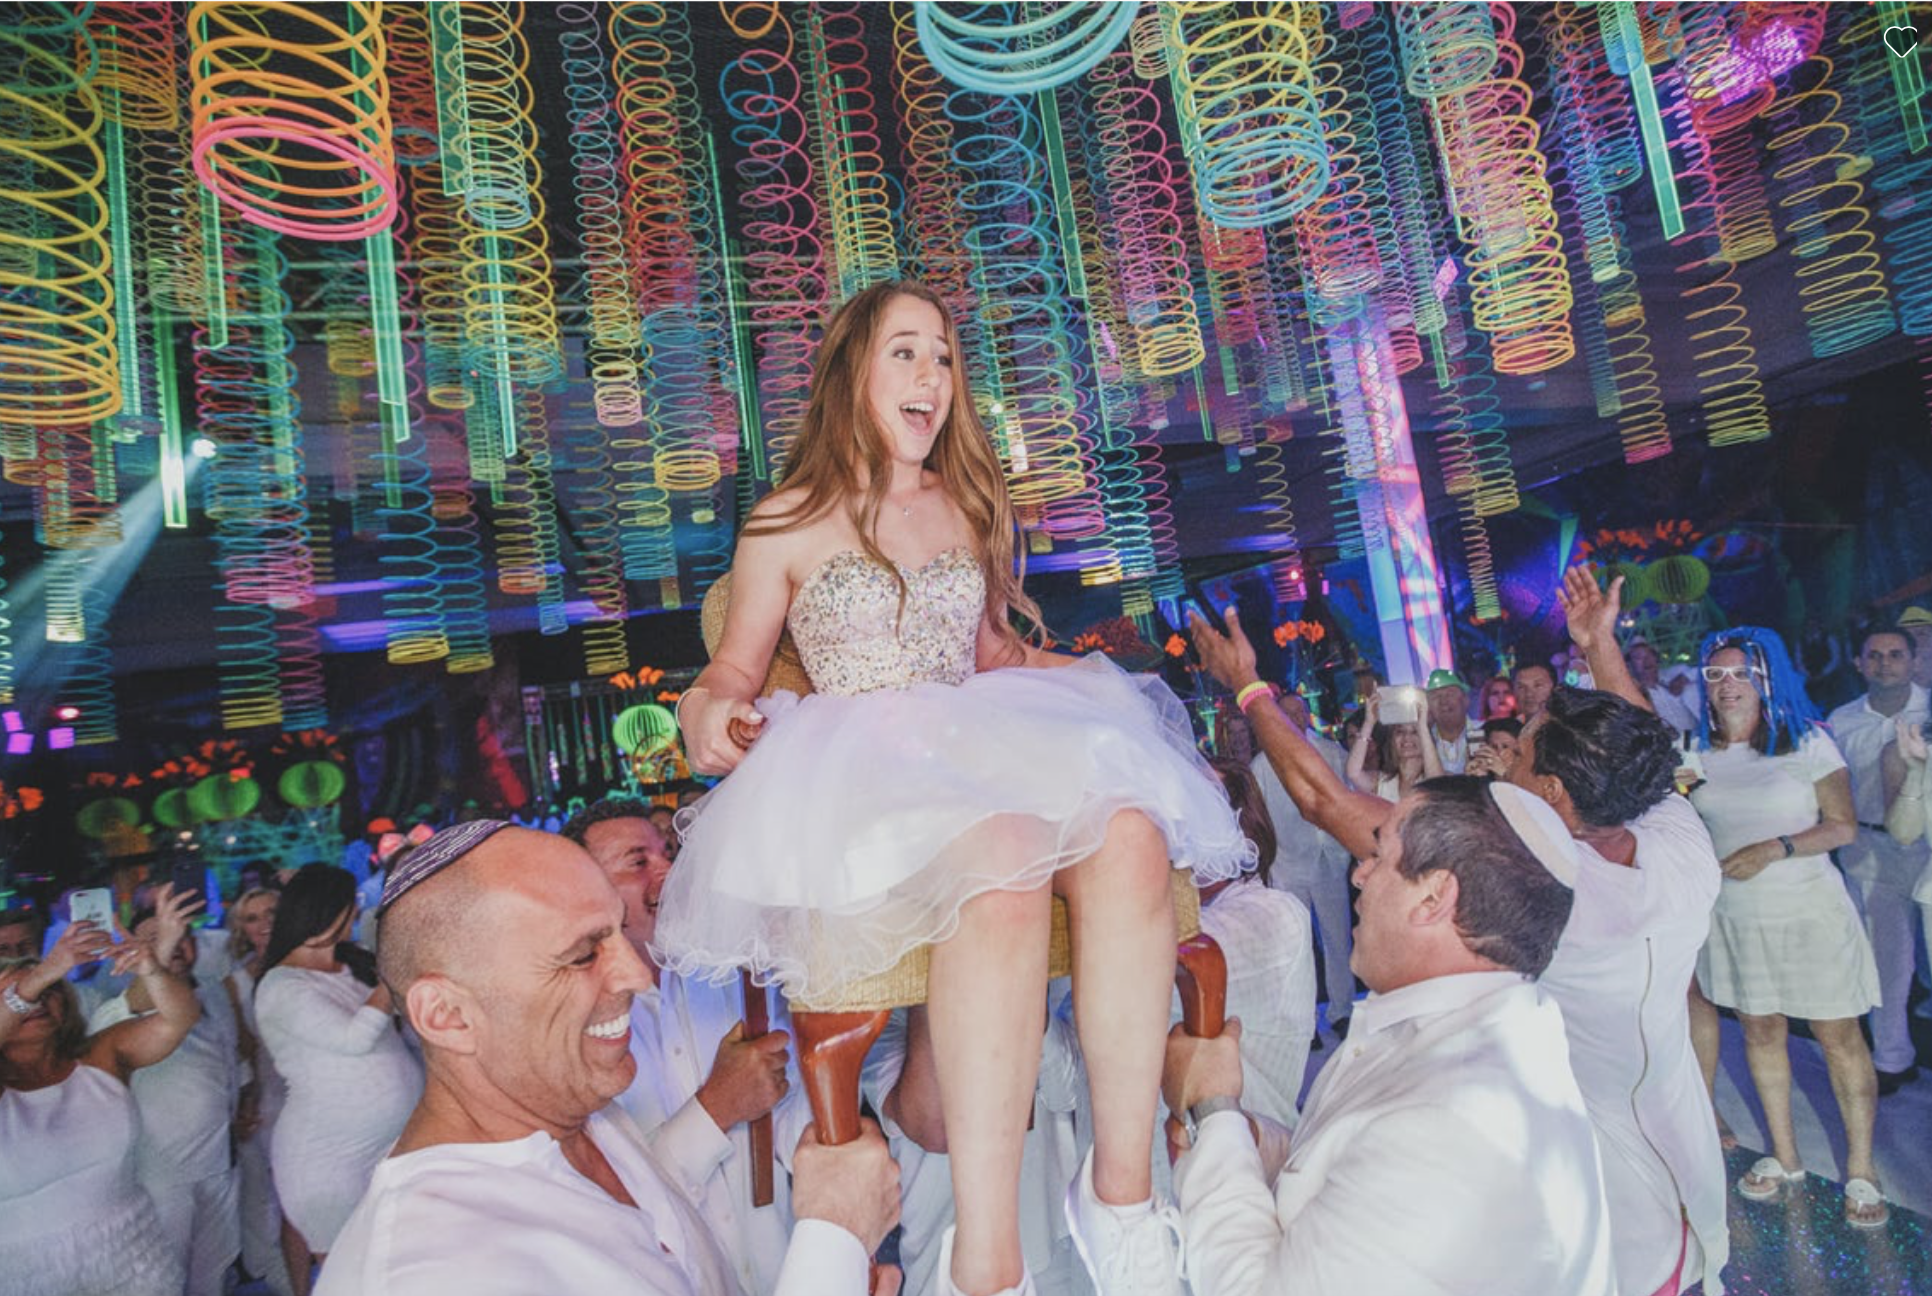 partyslate_Wedding_Buzz_NYCcreen partyslate_Wedding_Buzz_NYChot 2019-10-02 at 11.51.54 PM.png